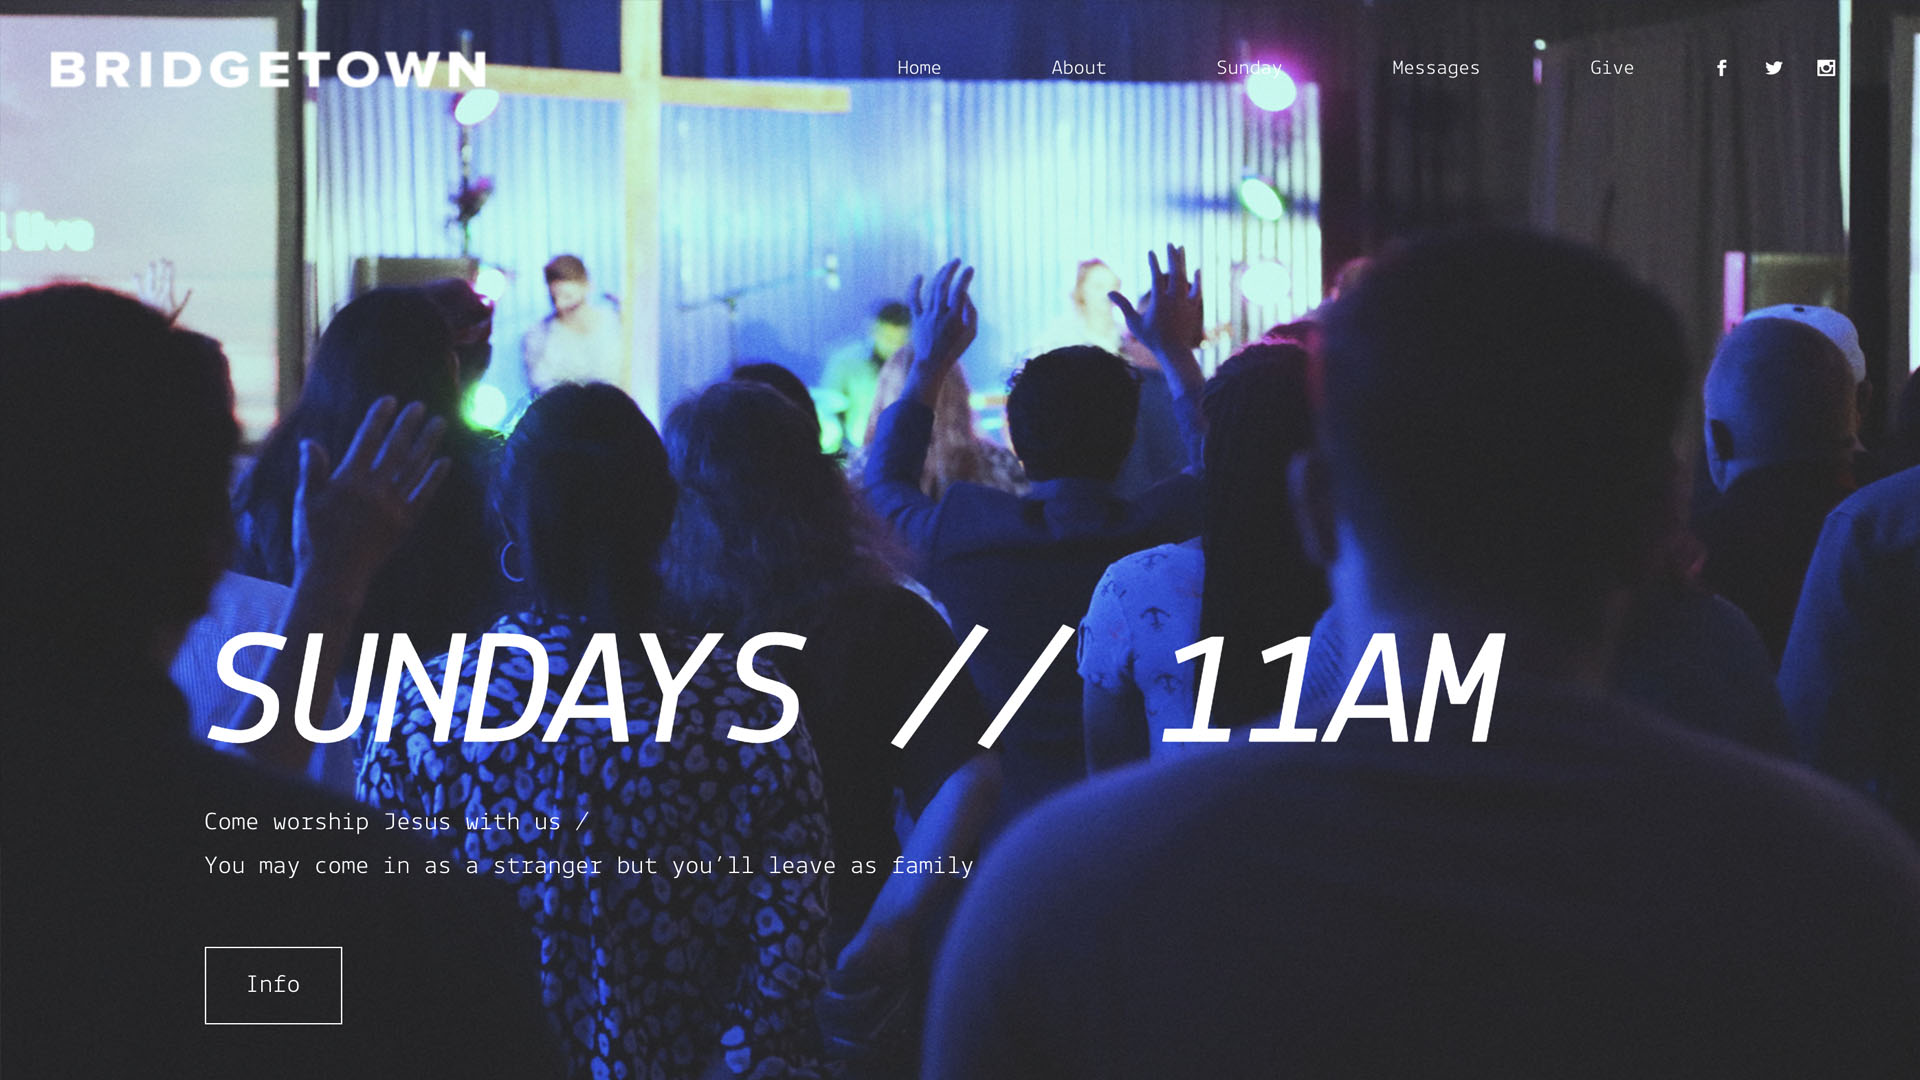 Bridgetown Church - http://bridgetownchurch.us/